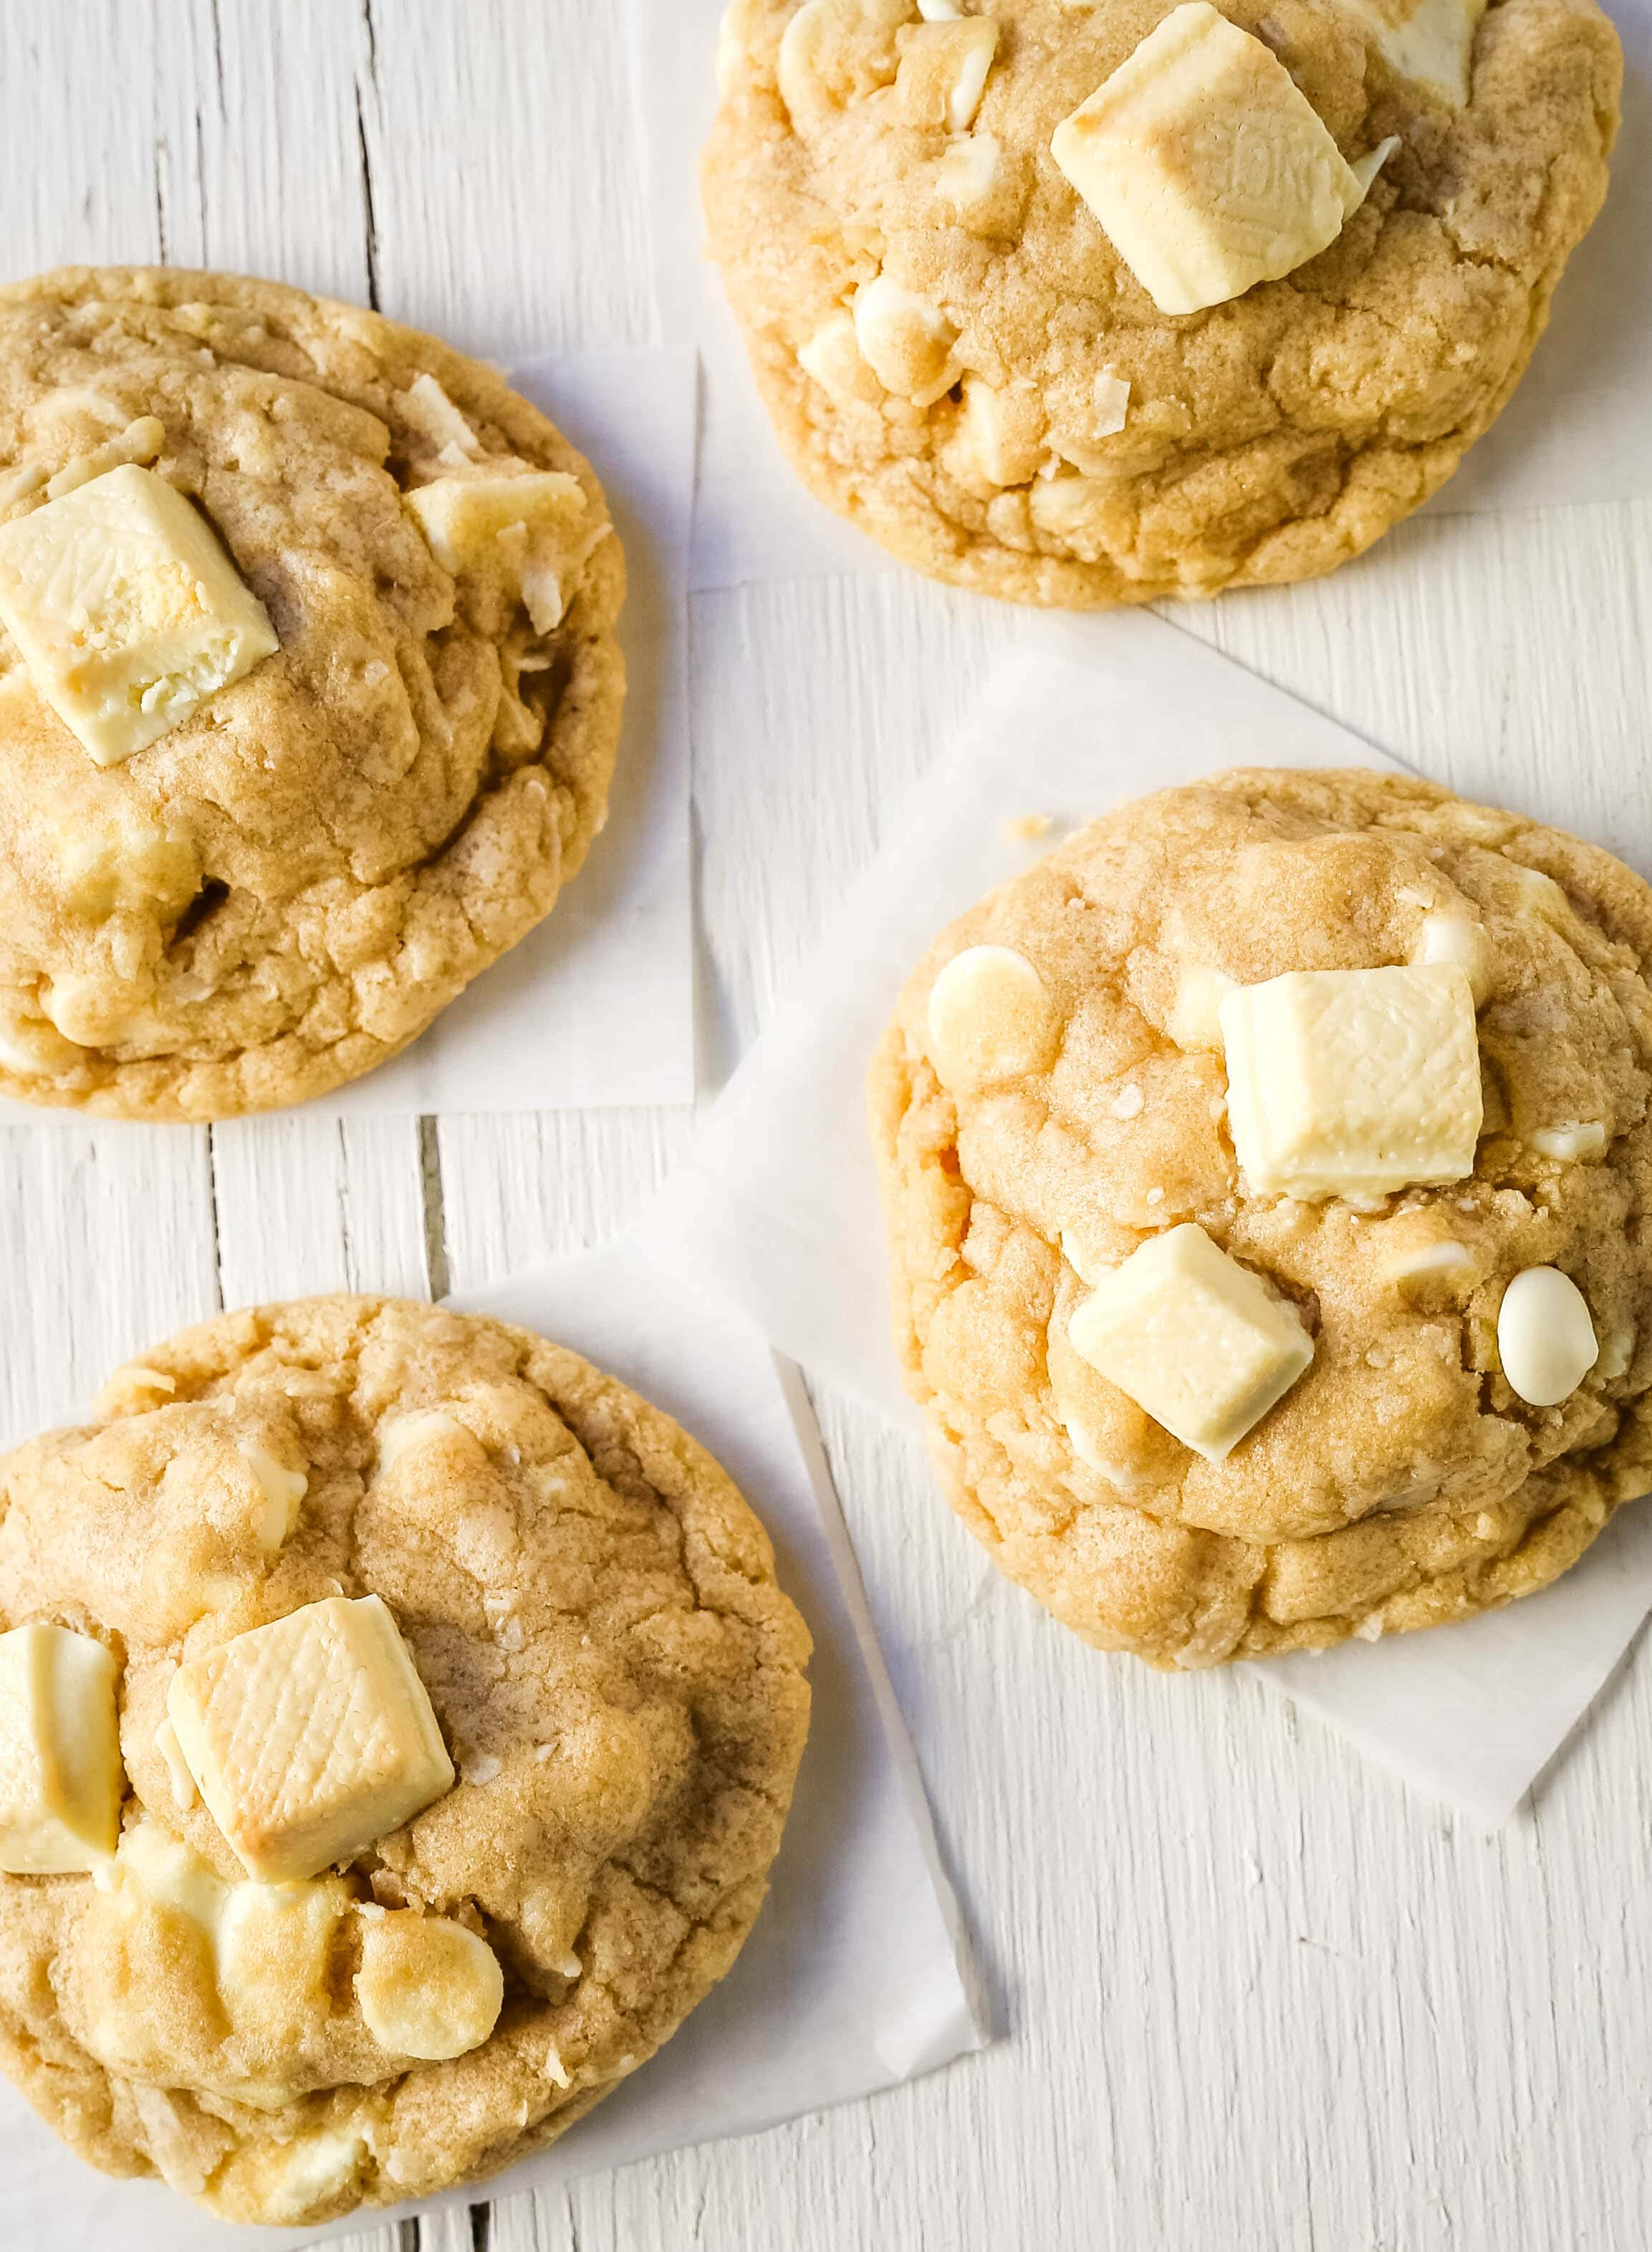 White Chocolate Coconut Cookies Soft chewy white chocolate coconut cookies are the perfect sweet, buttery tropical cookie! www.modernhoney.com #cookie #cookies #cookierecipe #cookierecipes #whitechocolatecookies